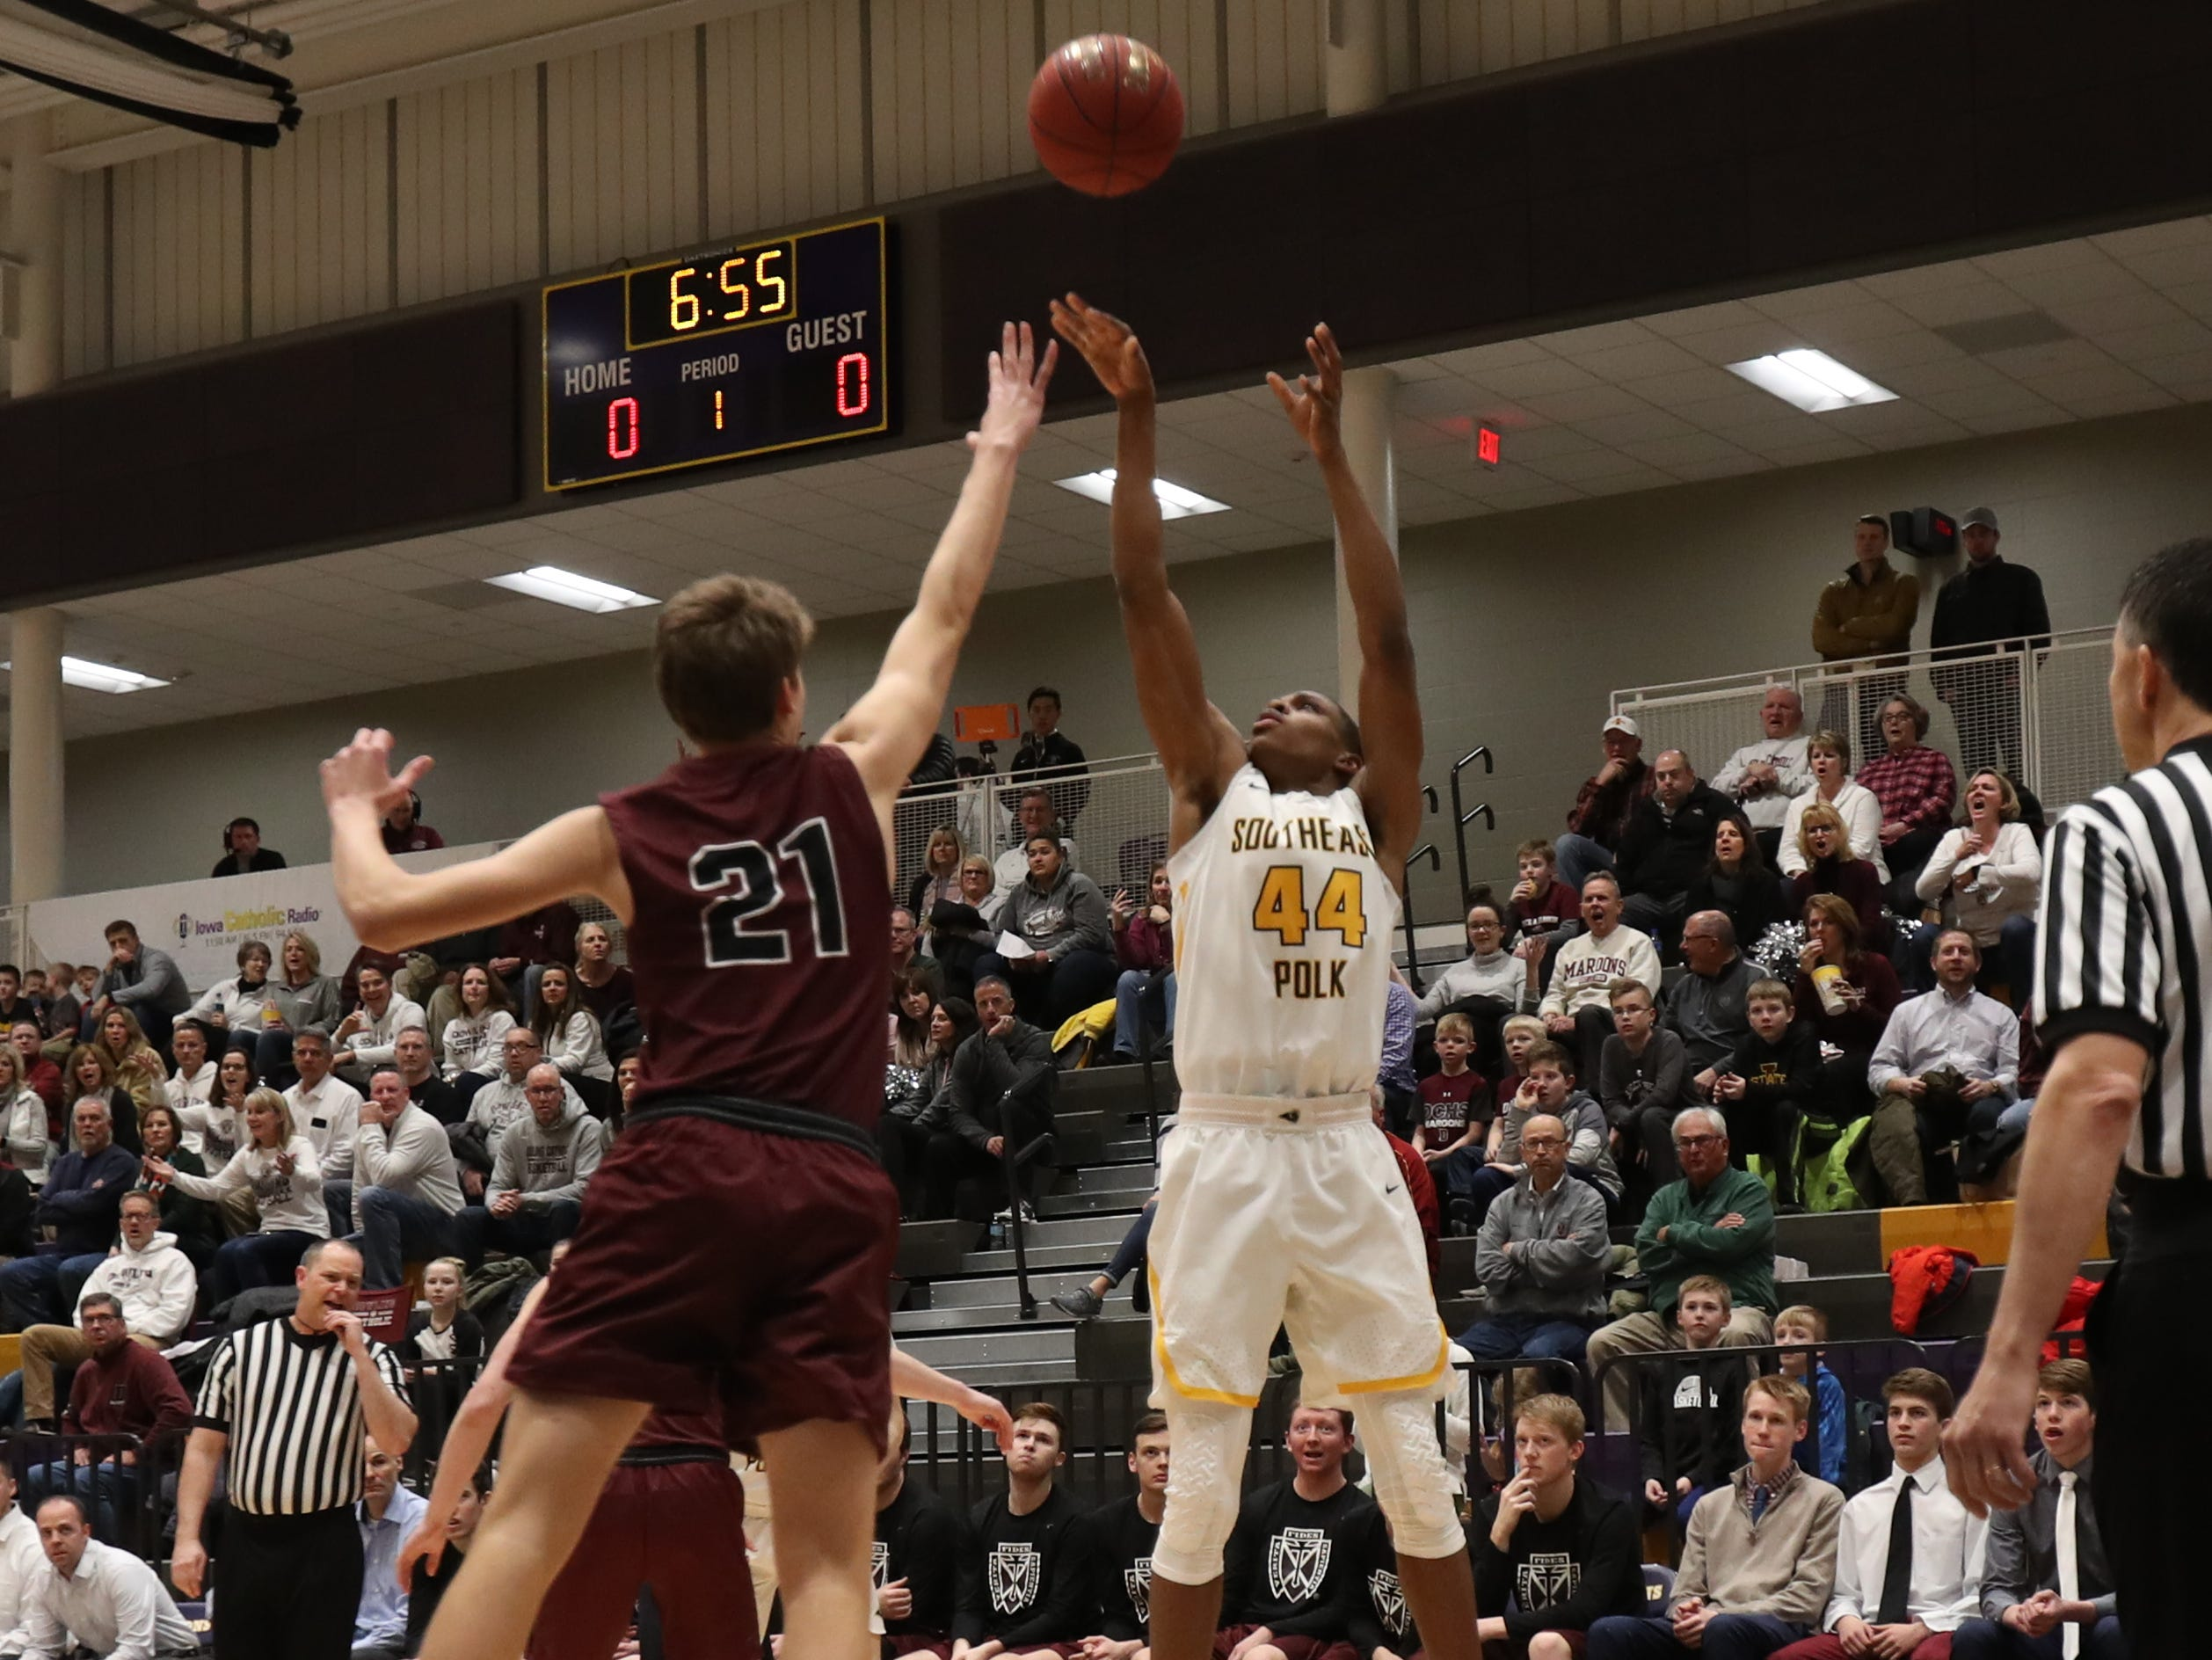 Southeast Polk's Malichai Williams (44) shoots over the arm of Dowling Catholic's Ryan Riggs (21) during their game at Johnston High School in Johnston, Iowa, on Tuesday, Feb. 26, 2019. Dowling won the game 44-40 to advance to state.